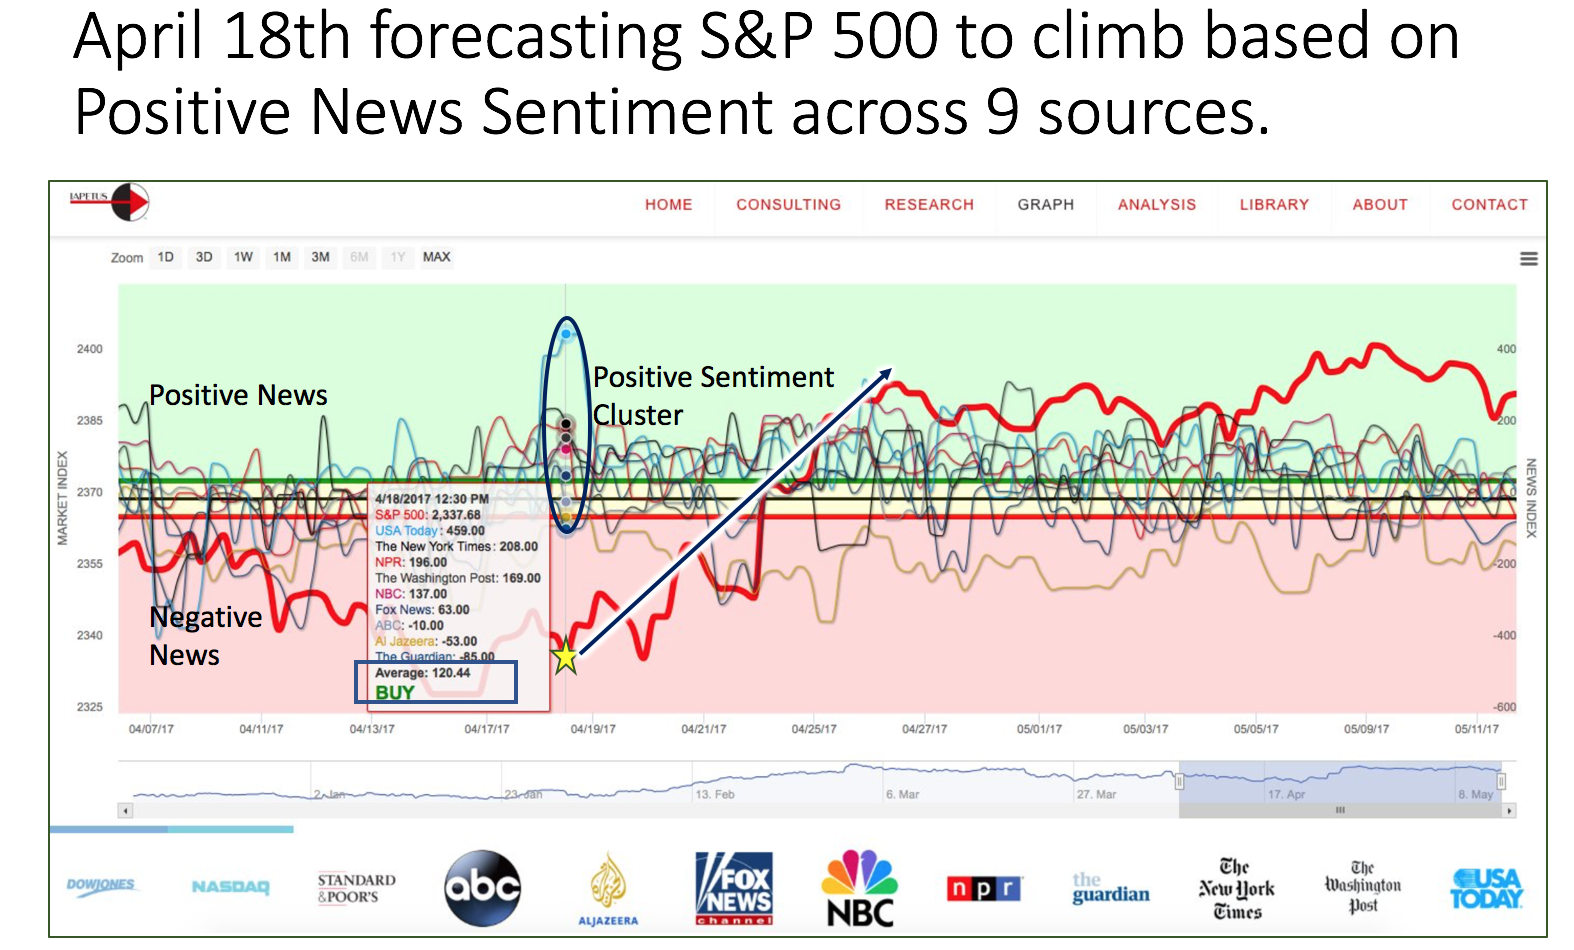 Sentiment Analysis Data Forecasts S&P 500 Gains